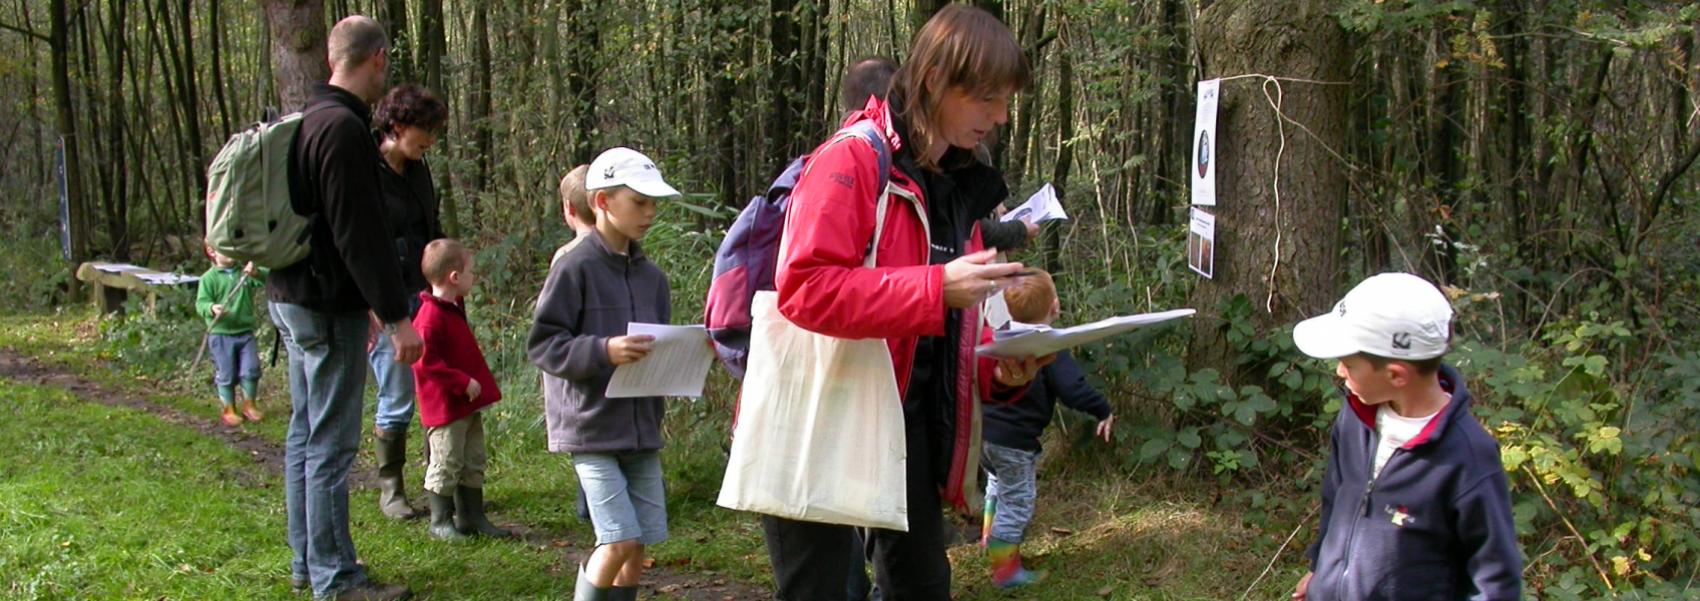 Kinderen in Stropersbos